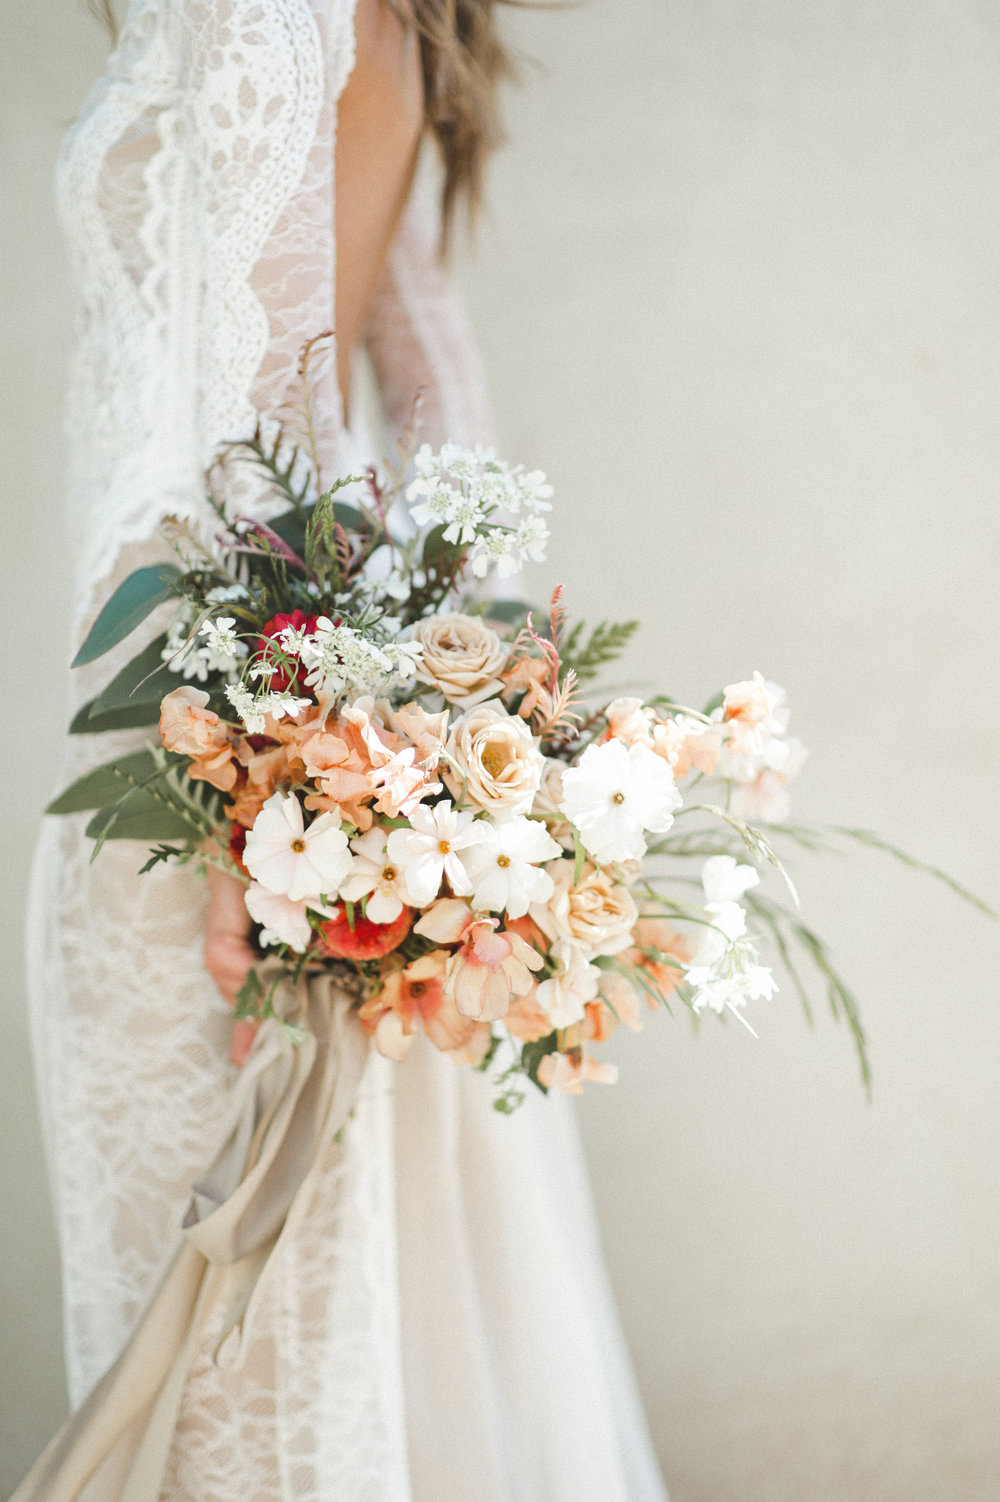 Santa Barbara Wedding, Boho Bride, Grace Loves Lace Dress, Organic Wild Flower Bridal Bouquet.